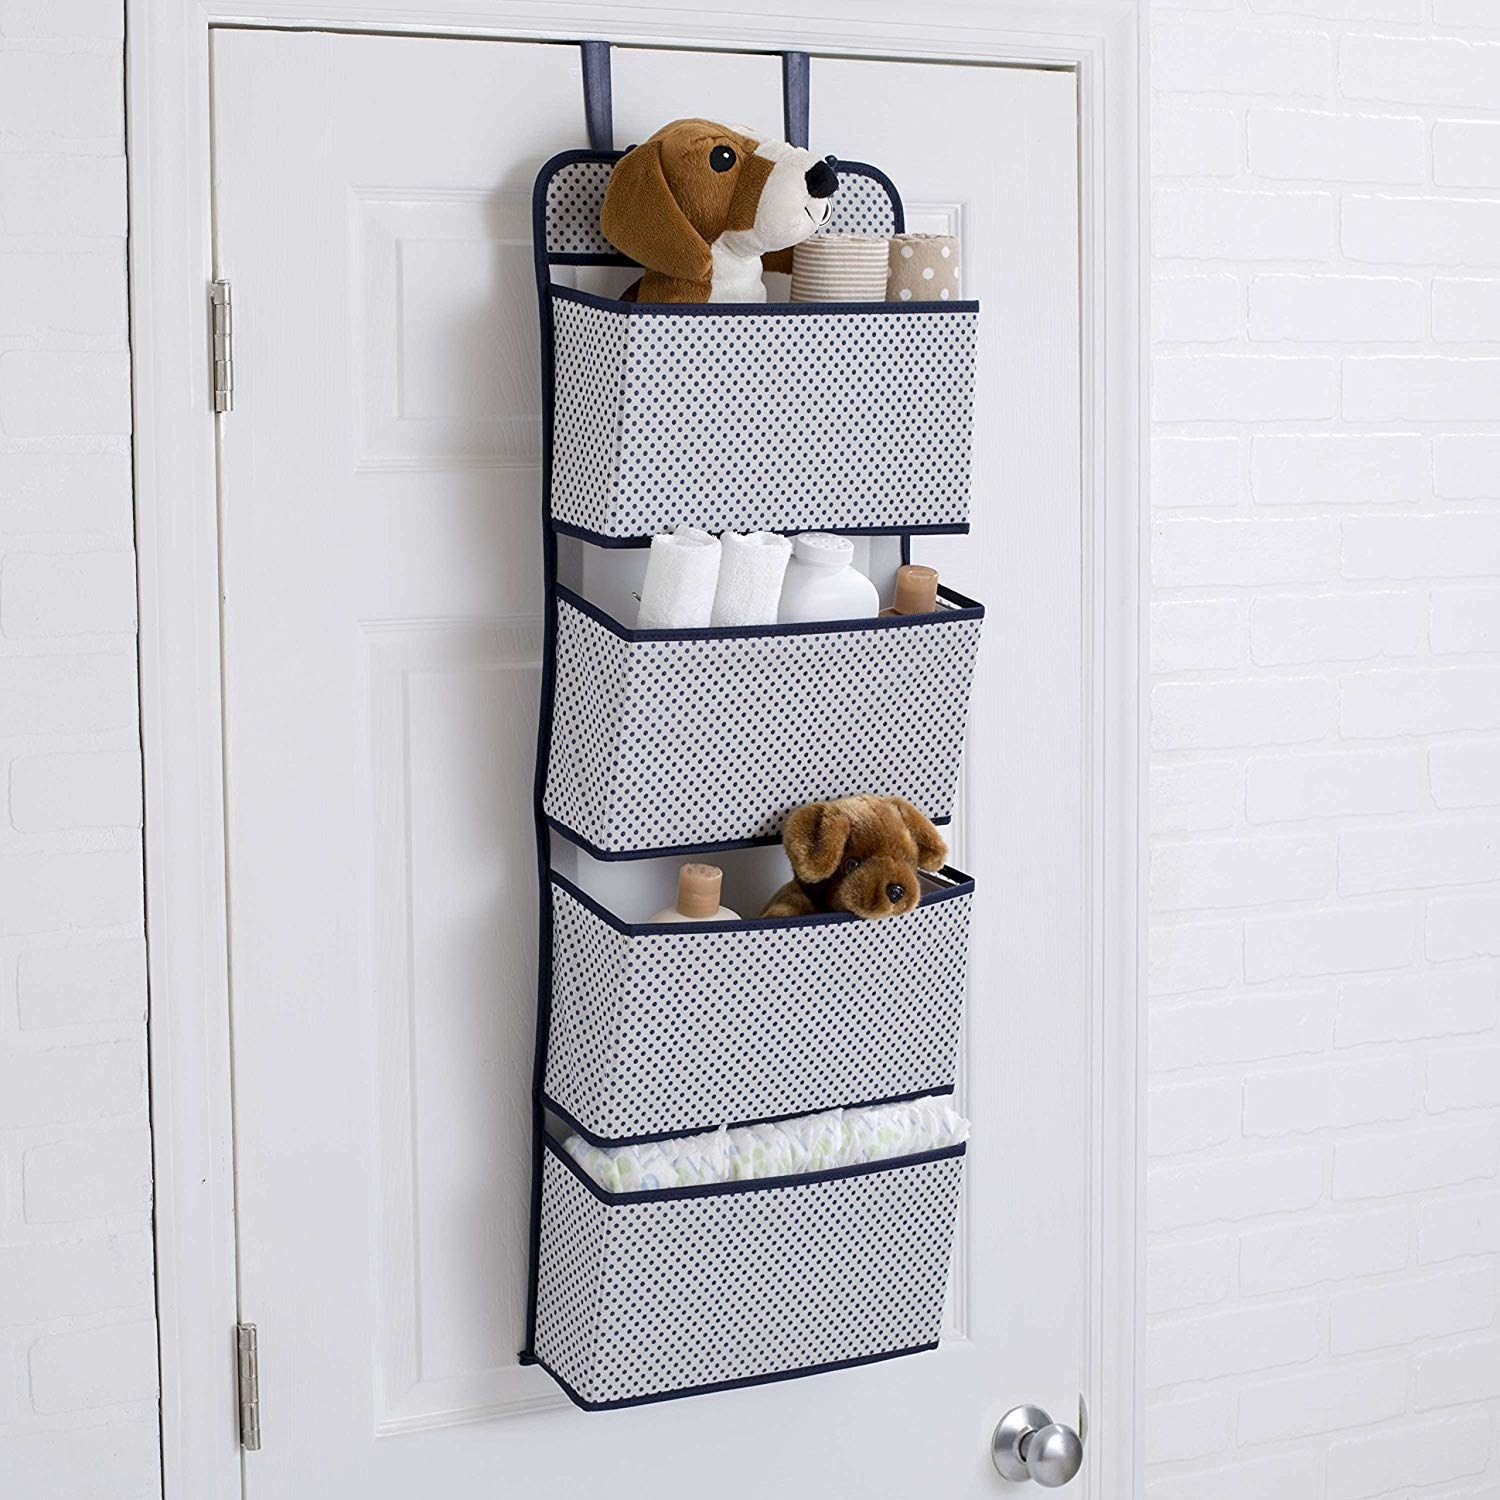 A grey over the door organiser with items in it